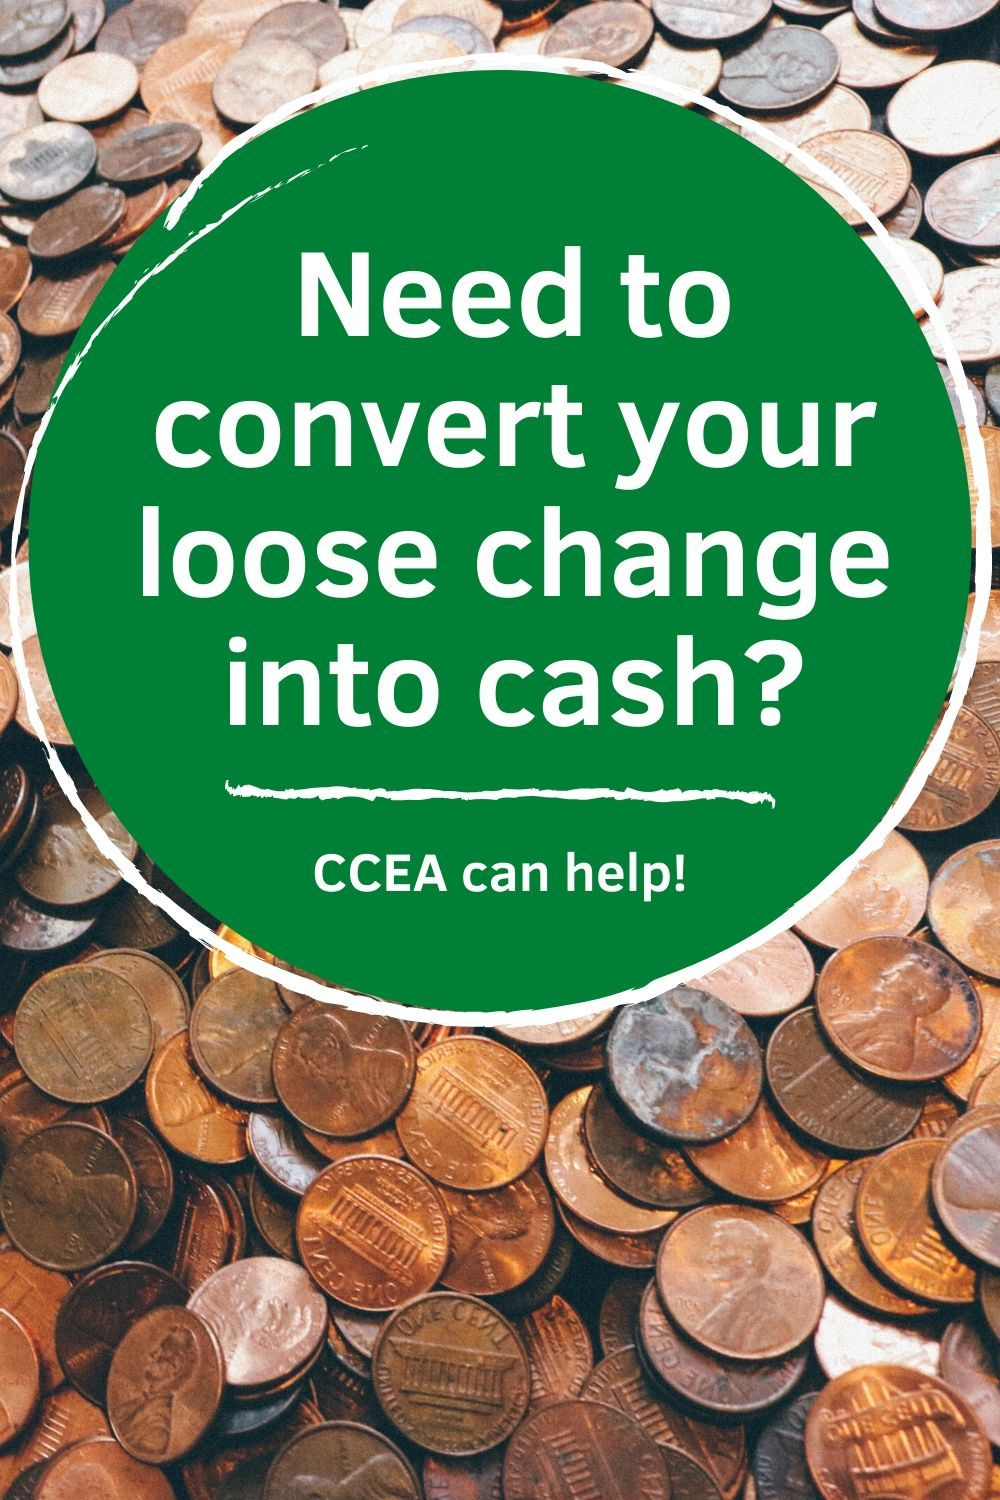 Loose Change Counting Coins Coins Cash